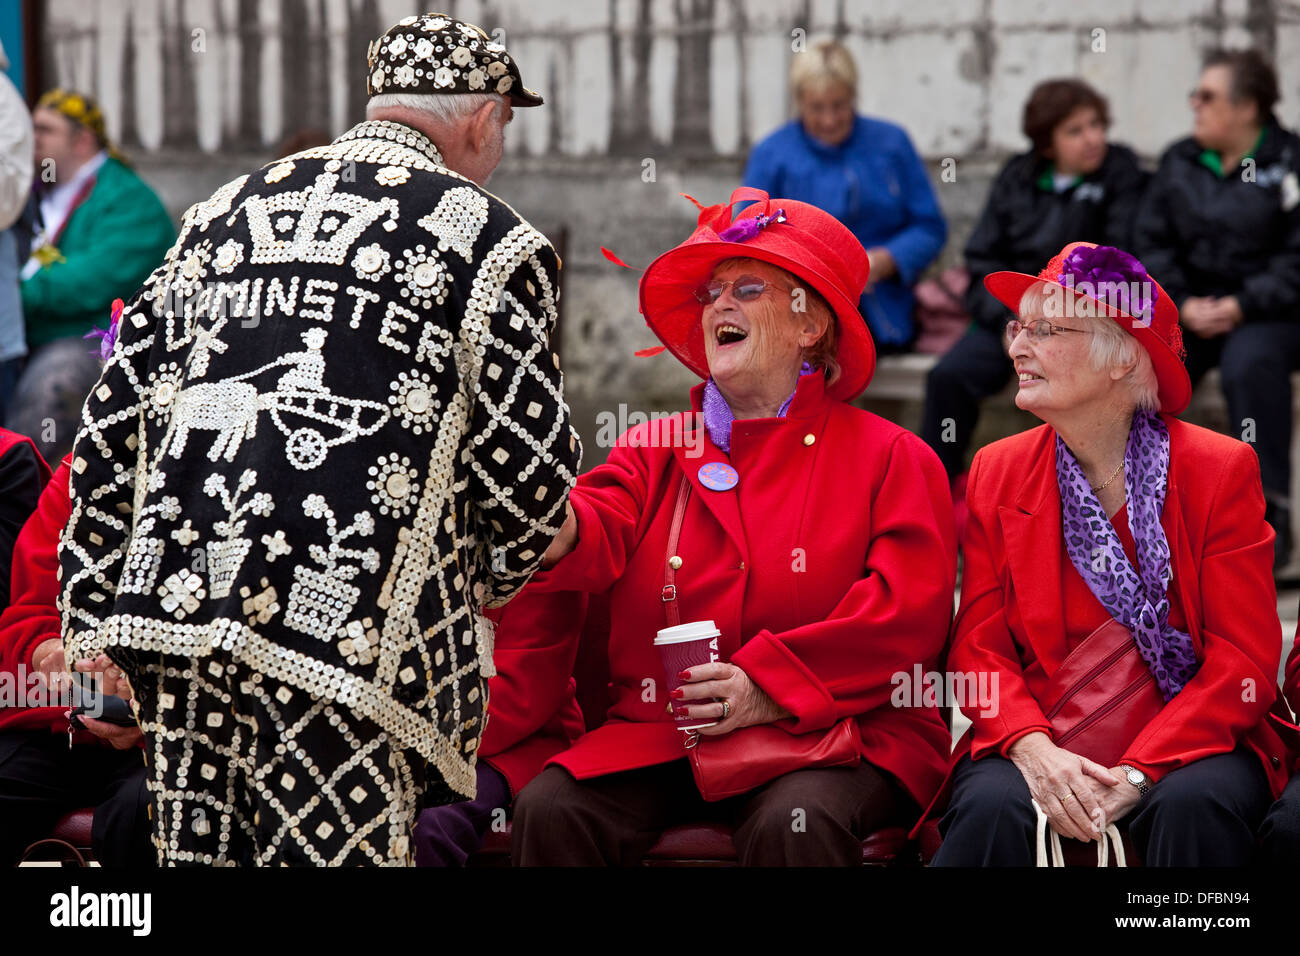 A Pearly King Talking With The Crowd, The Pearly Kings and Queens Harvest Festival, London, England - Stock Image